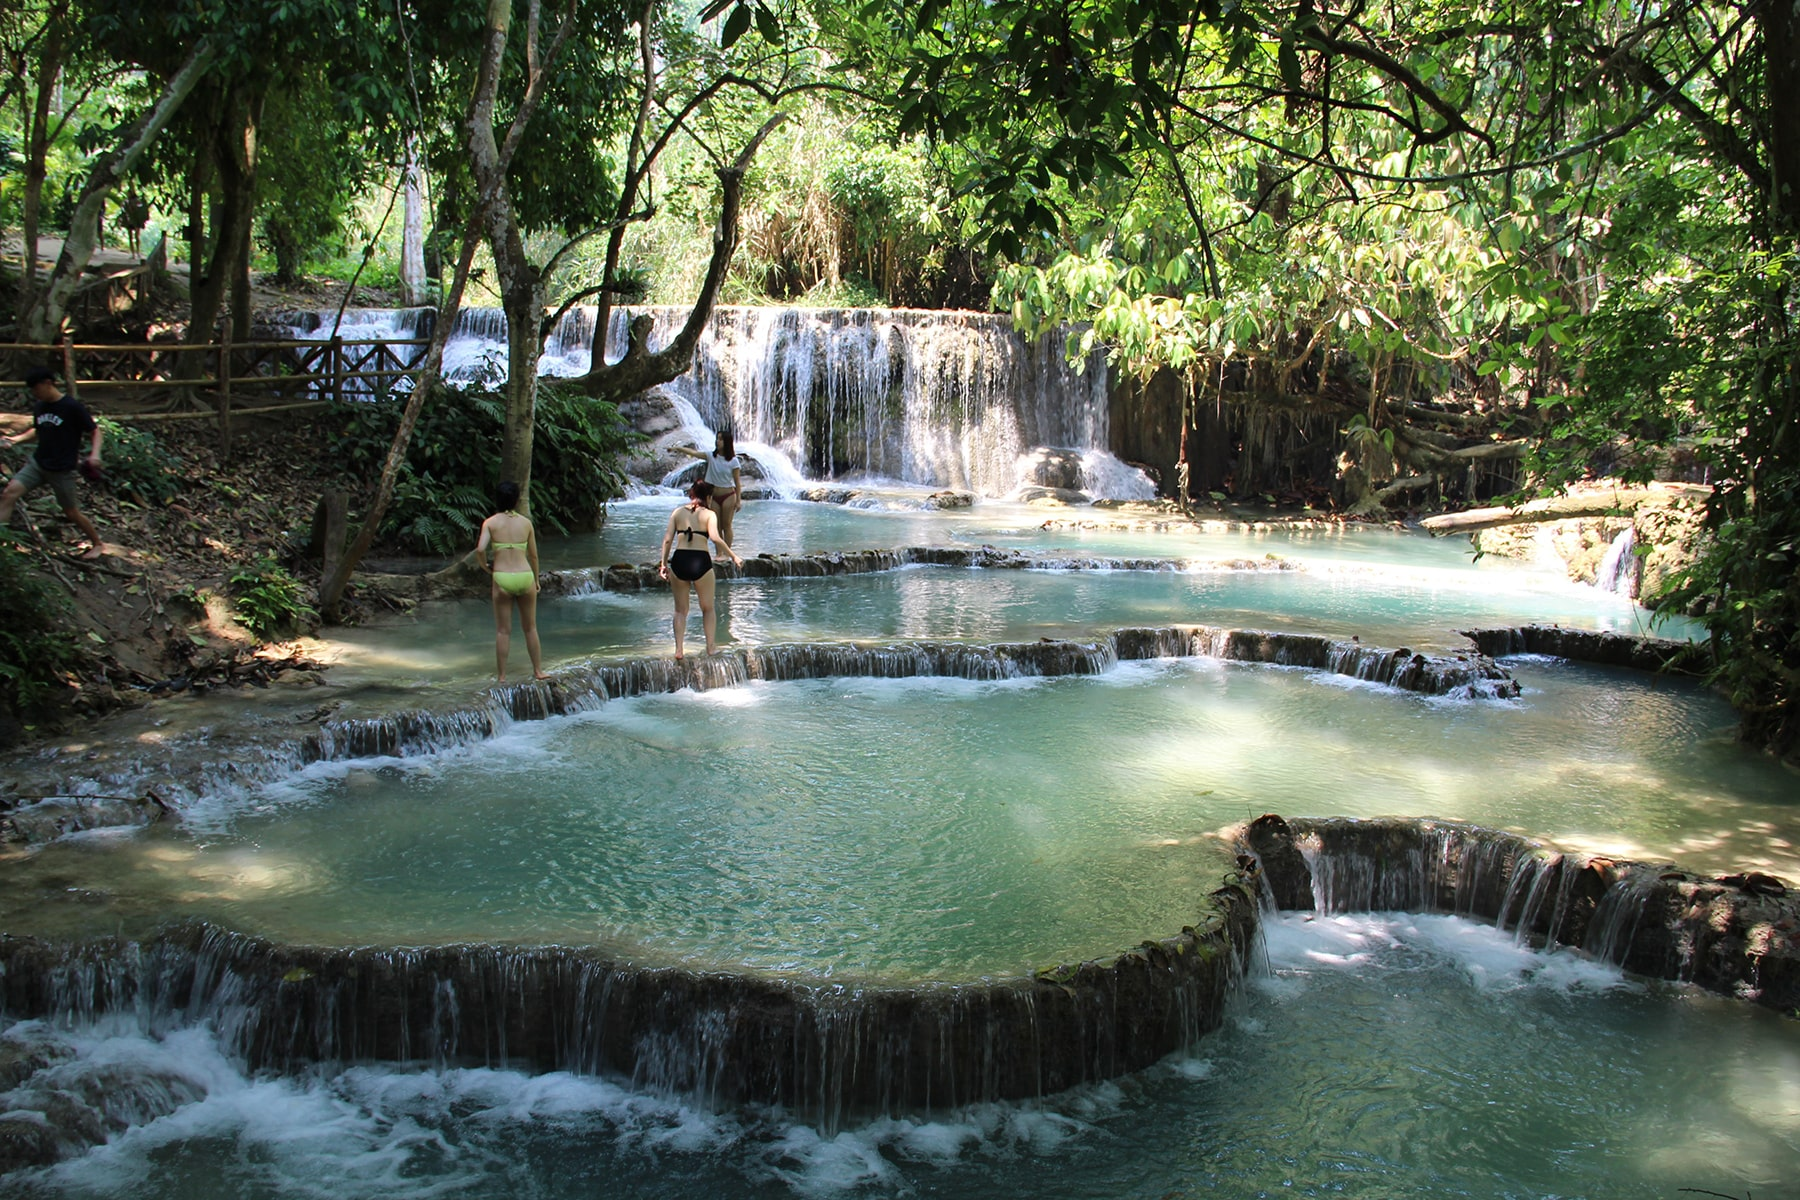 Kuang Si park Waterfalls natural pool, Laos